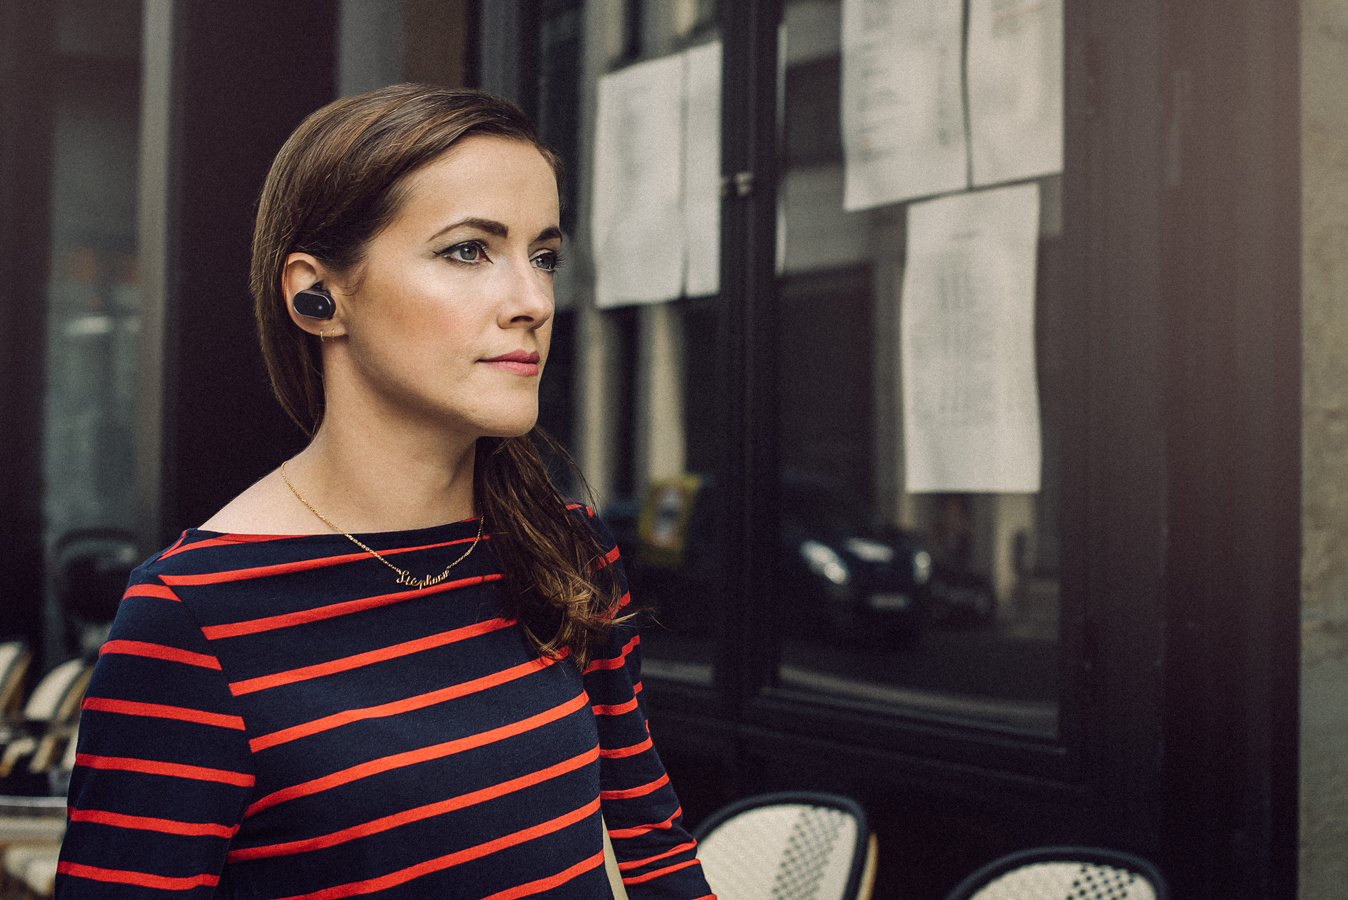 xperia-ear_paris